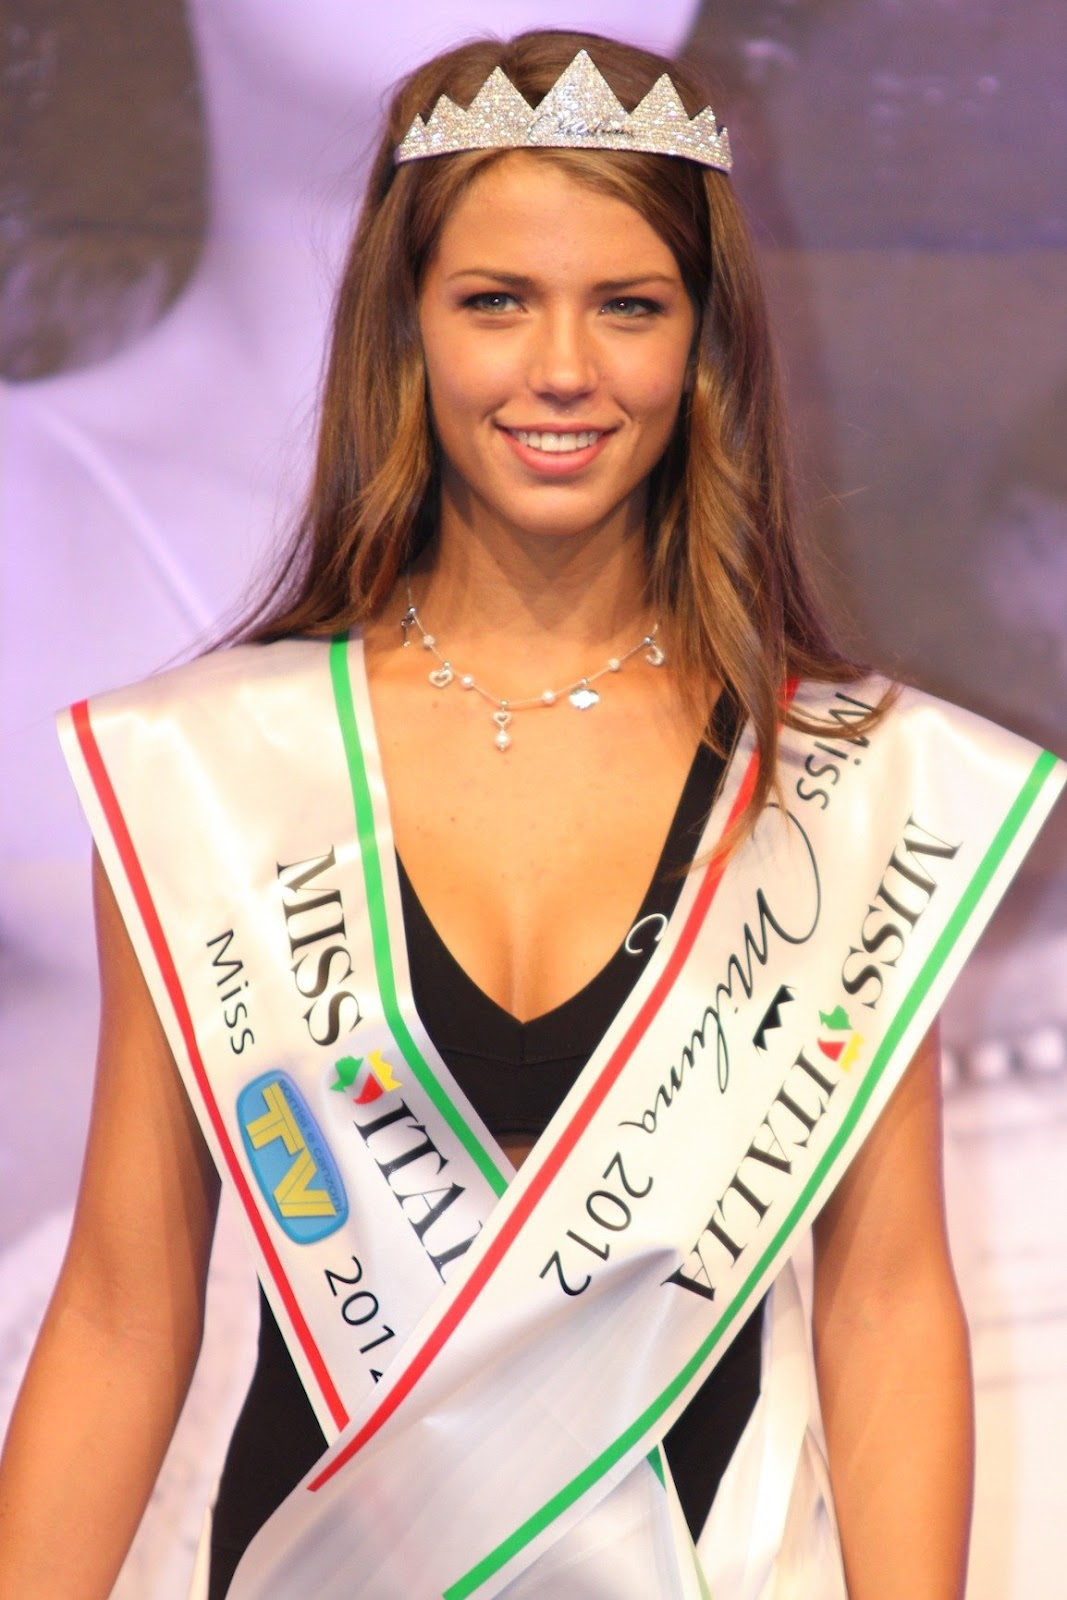 Miss italia 2012 wallpaper hd